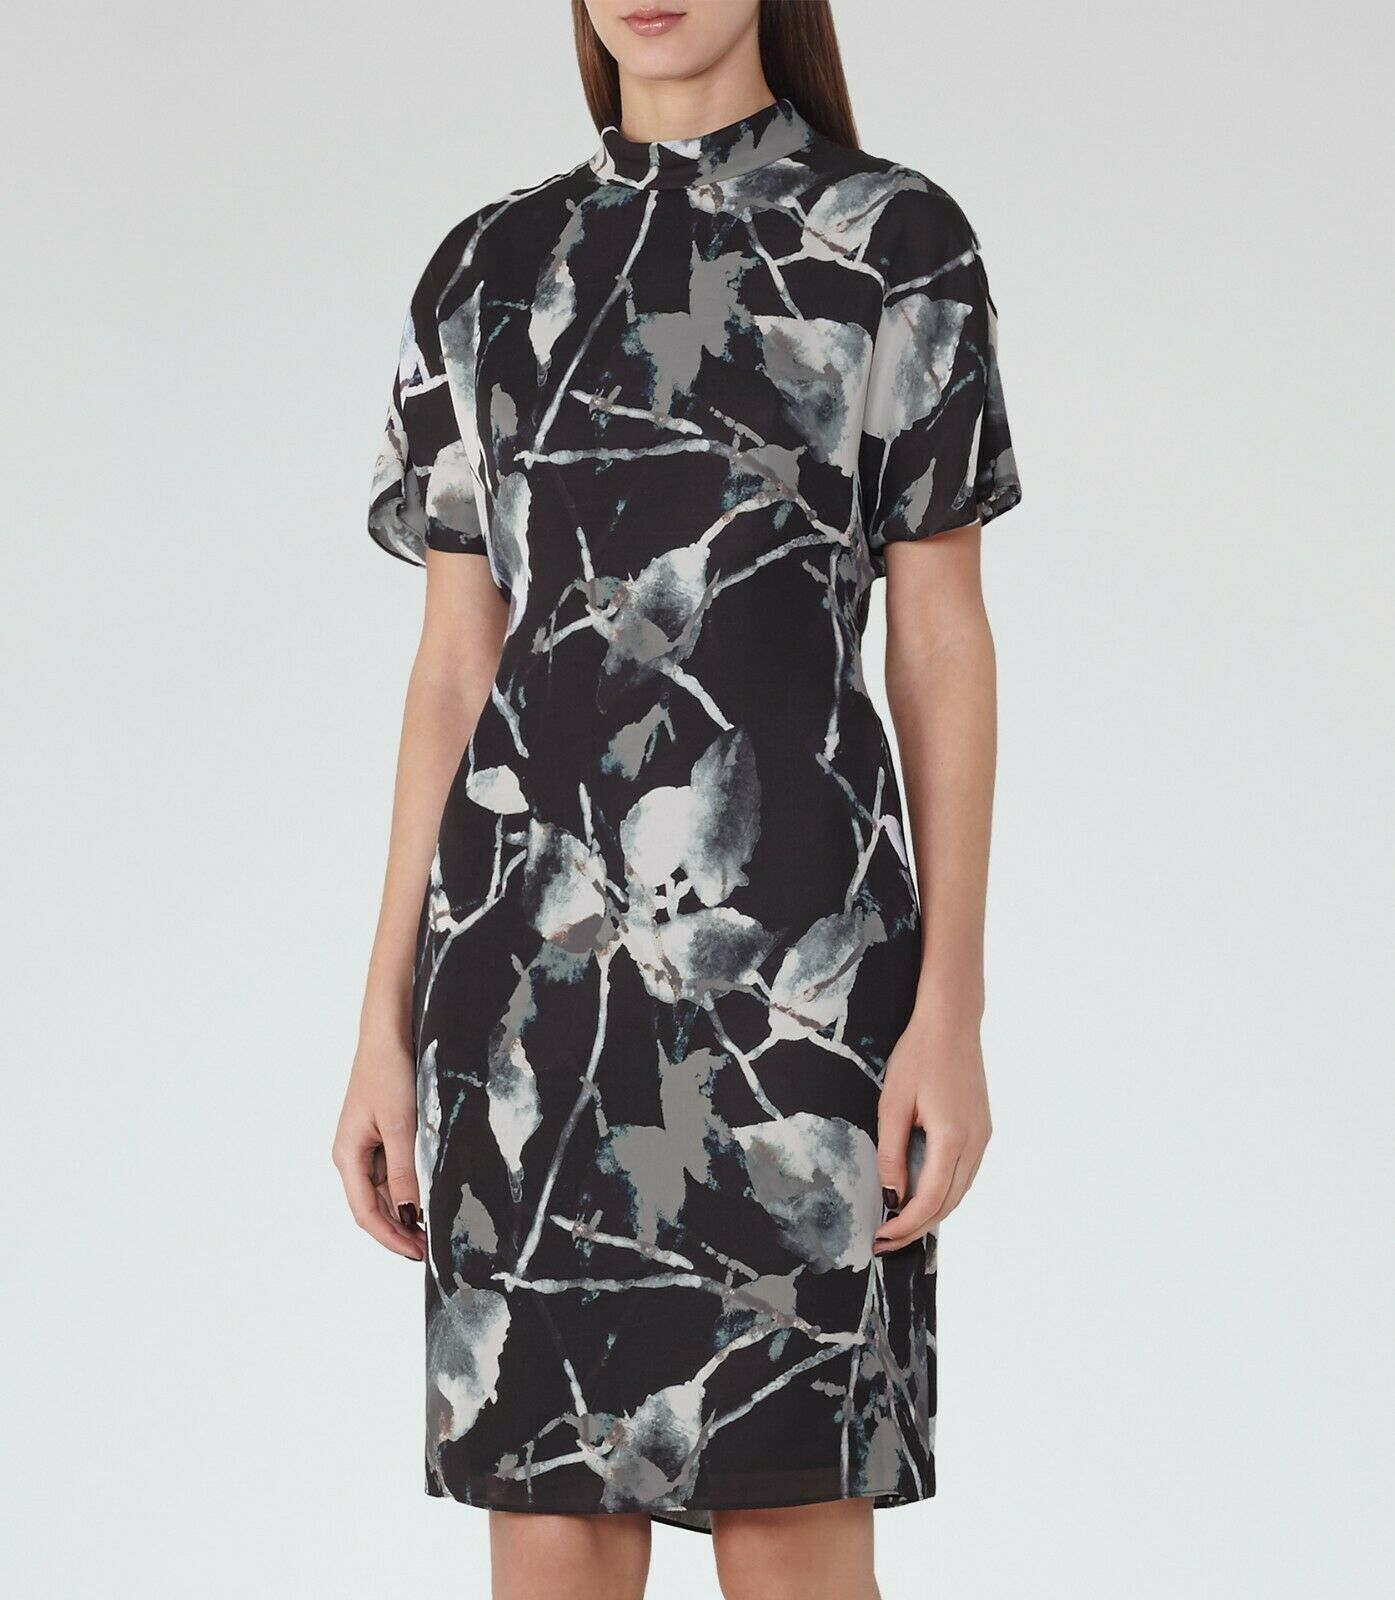 Stunning Reiss 'Becca' Printed Dress in bluee Size 8 RRP .00